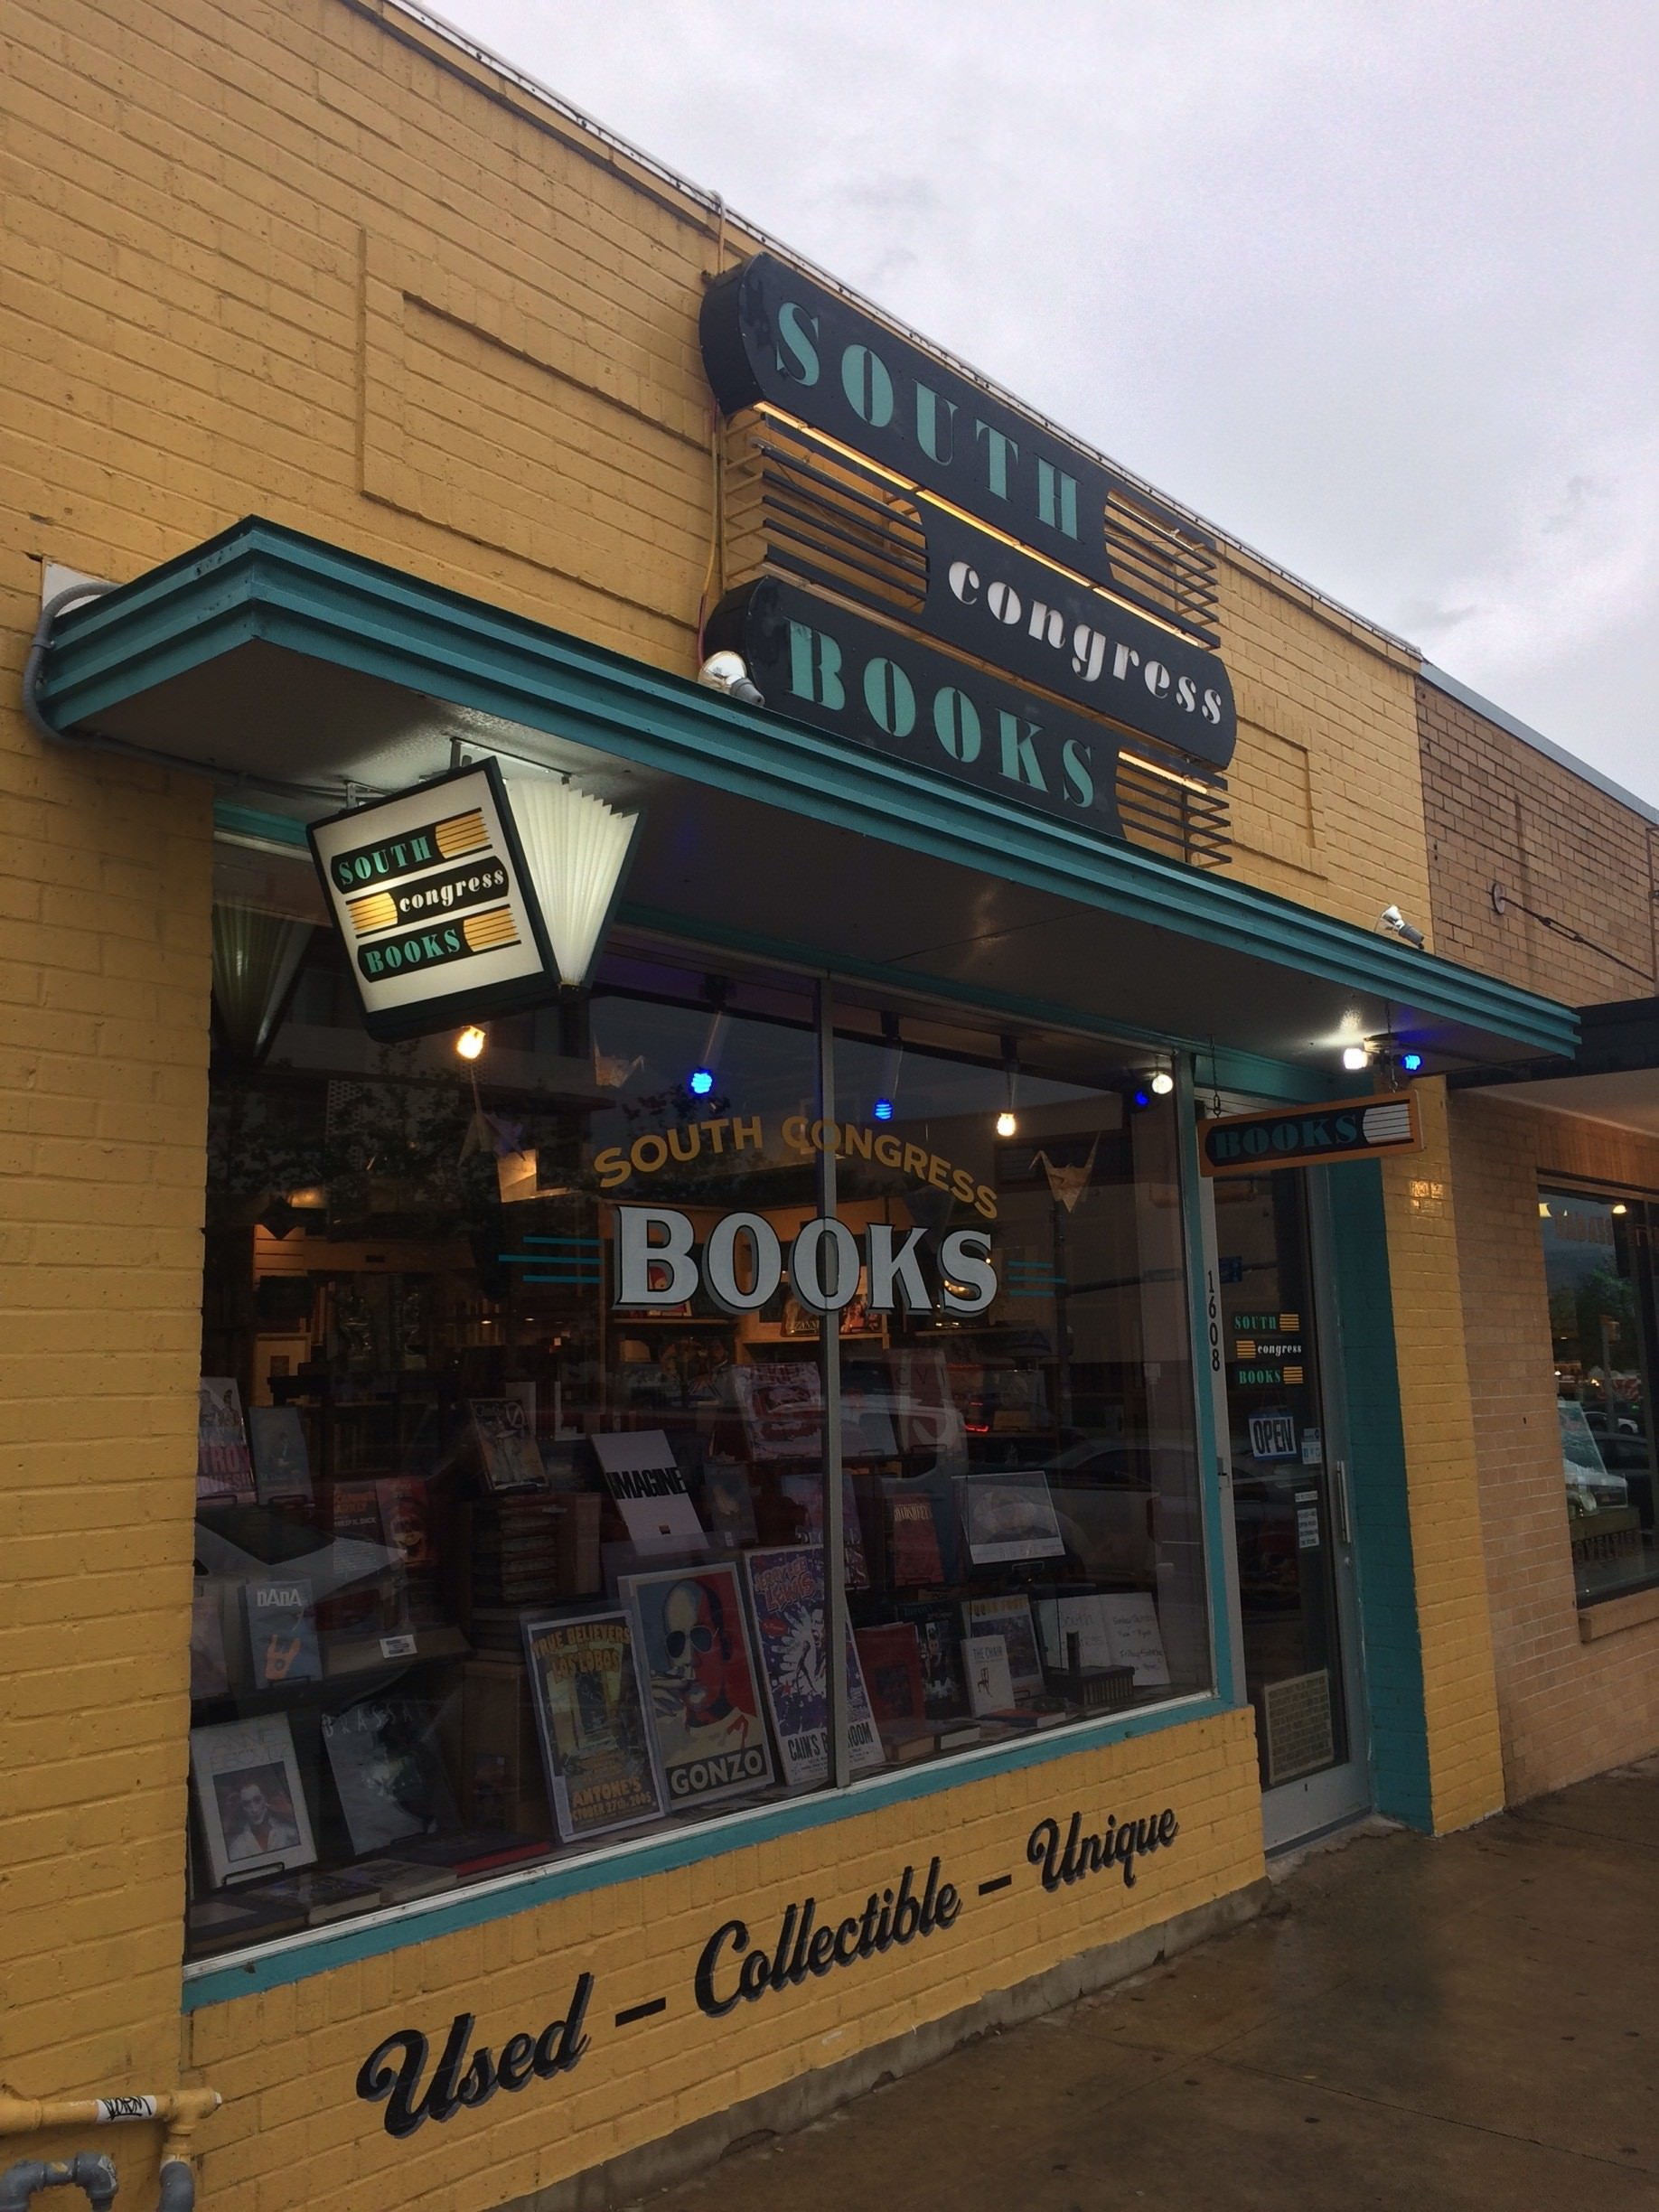 south congress book shop in austin, tx